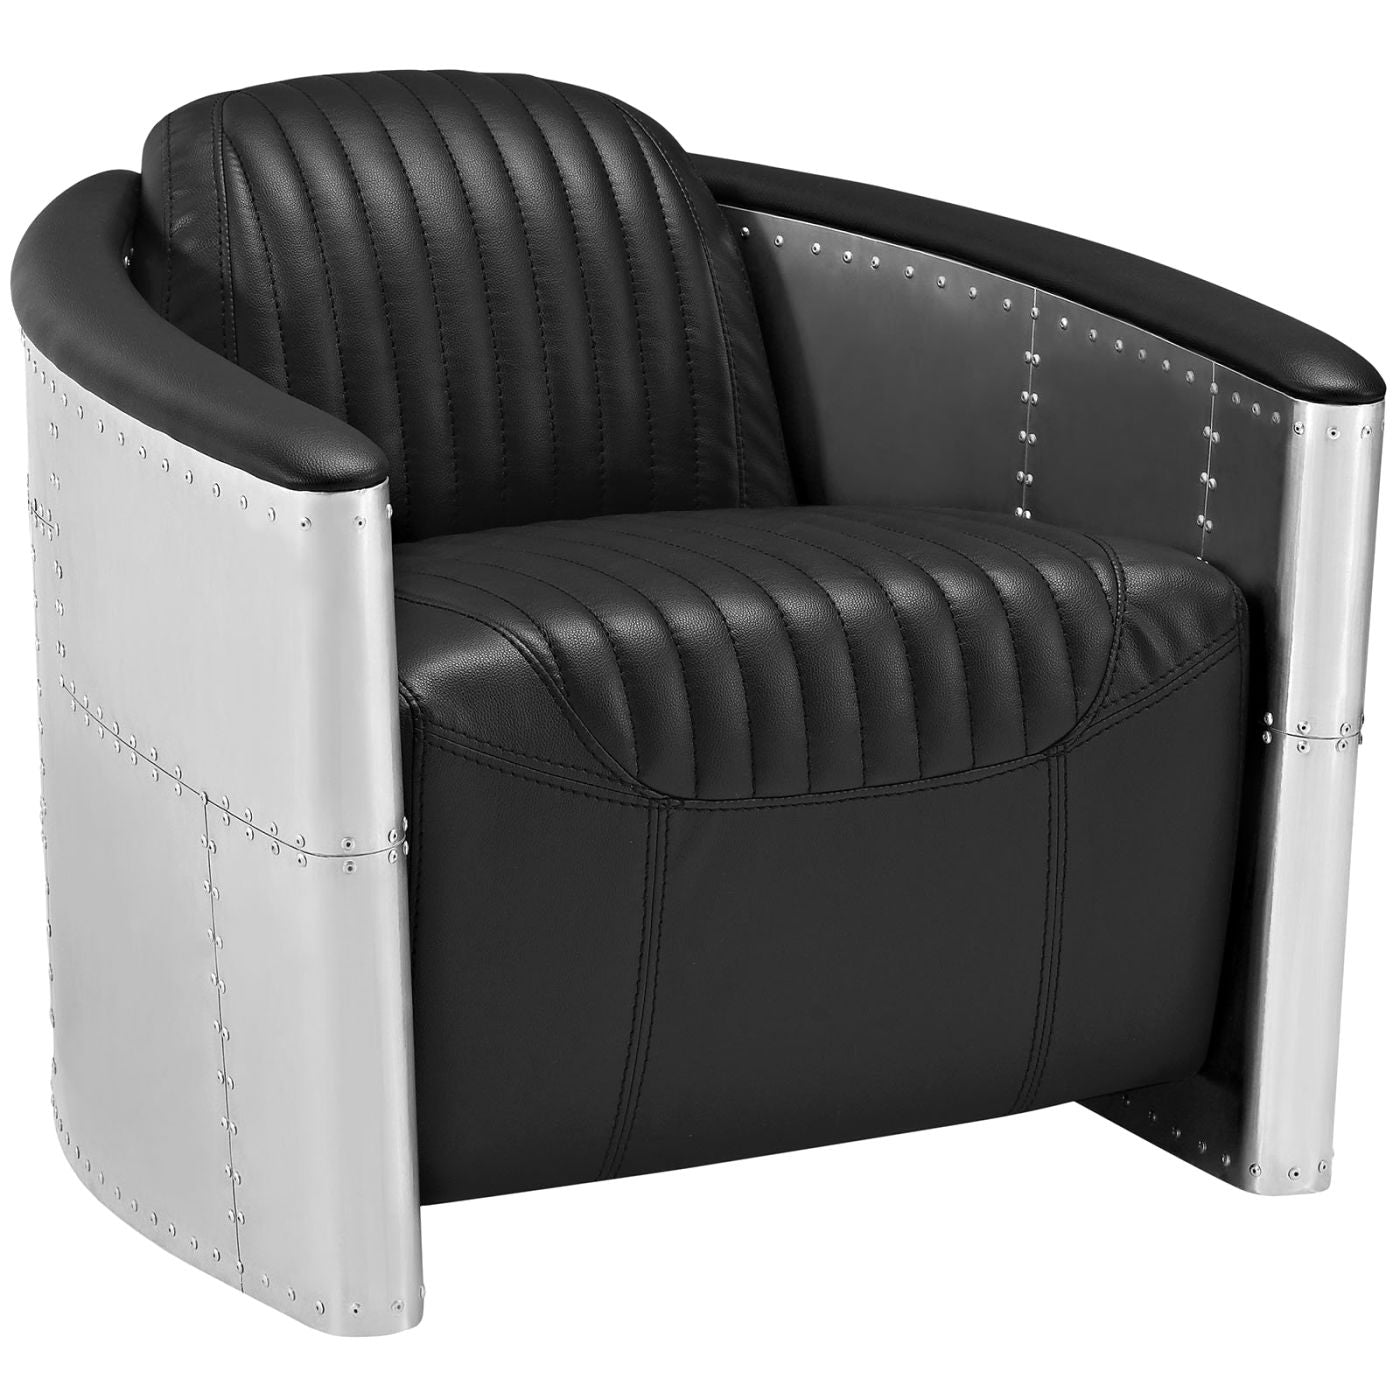 Visibility Upholstered Faux Leather Lounge Chair Brown Visibility  Upholstered Faux Leather Lounge Chair Black ...